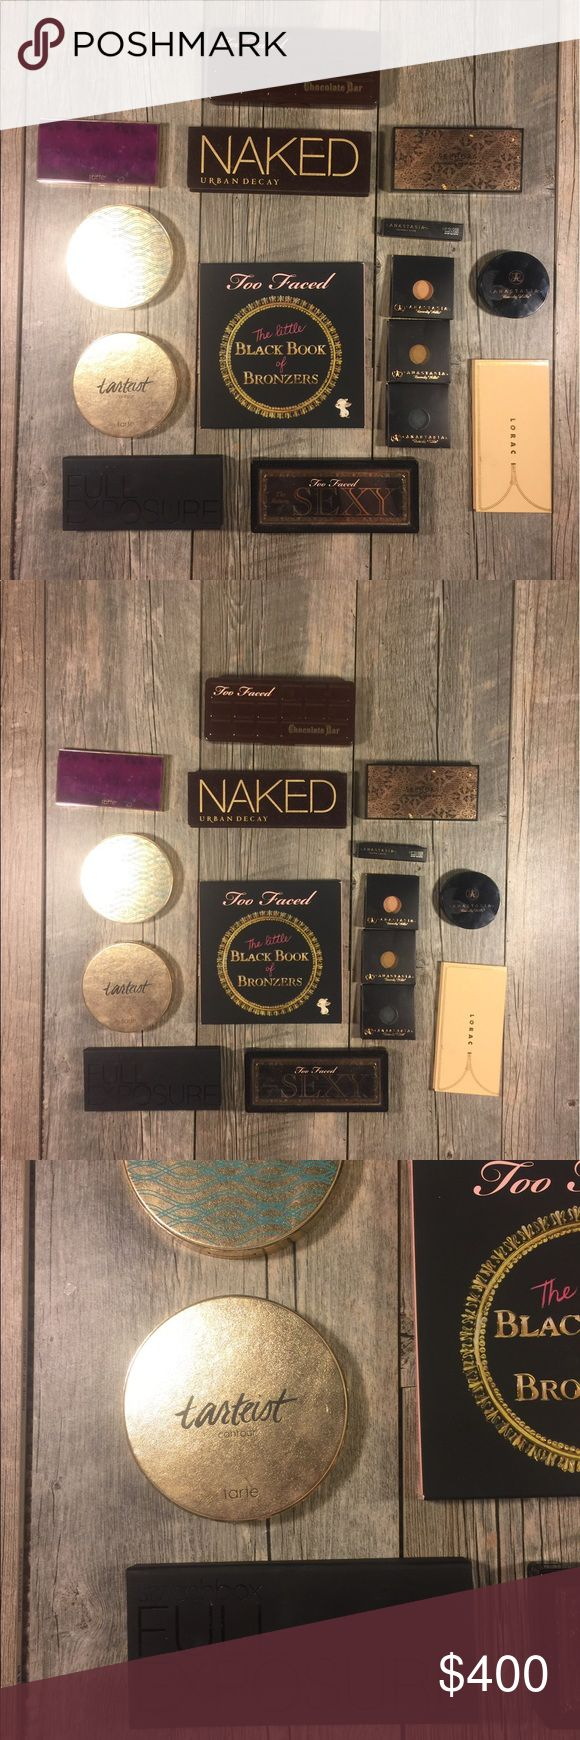 MAKE OFFERS - Huge lot of palettes and makeup Tarte energy noir clay palette, Tarte wipeout color-correcting palette, tarteist - SOLD , Anastasia Beverly Hills peach nectar illuminator, ABH Lip gloss .07oz Butterscotch, Too Faced Chocolate bar, Too Faced return of Sexy eyeshadow & eyeliner, smashbox full exposure palette, ABH Metallic, Mermaid and Peach Sorbet singles, Sephora moonshadow baked palette in the nude, naked eyeshadow, Lorac Unzipped, TooFaced the little black book of bronzers…